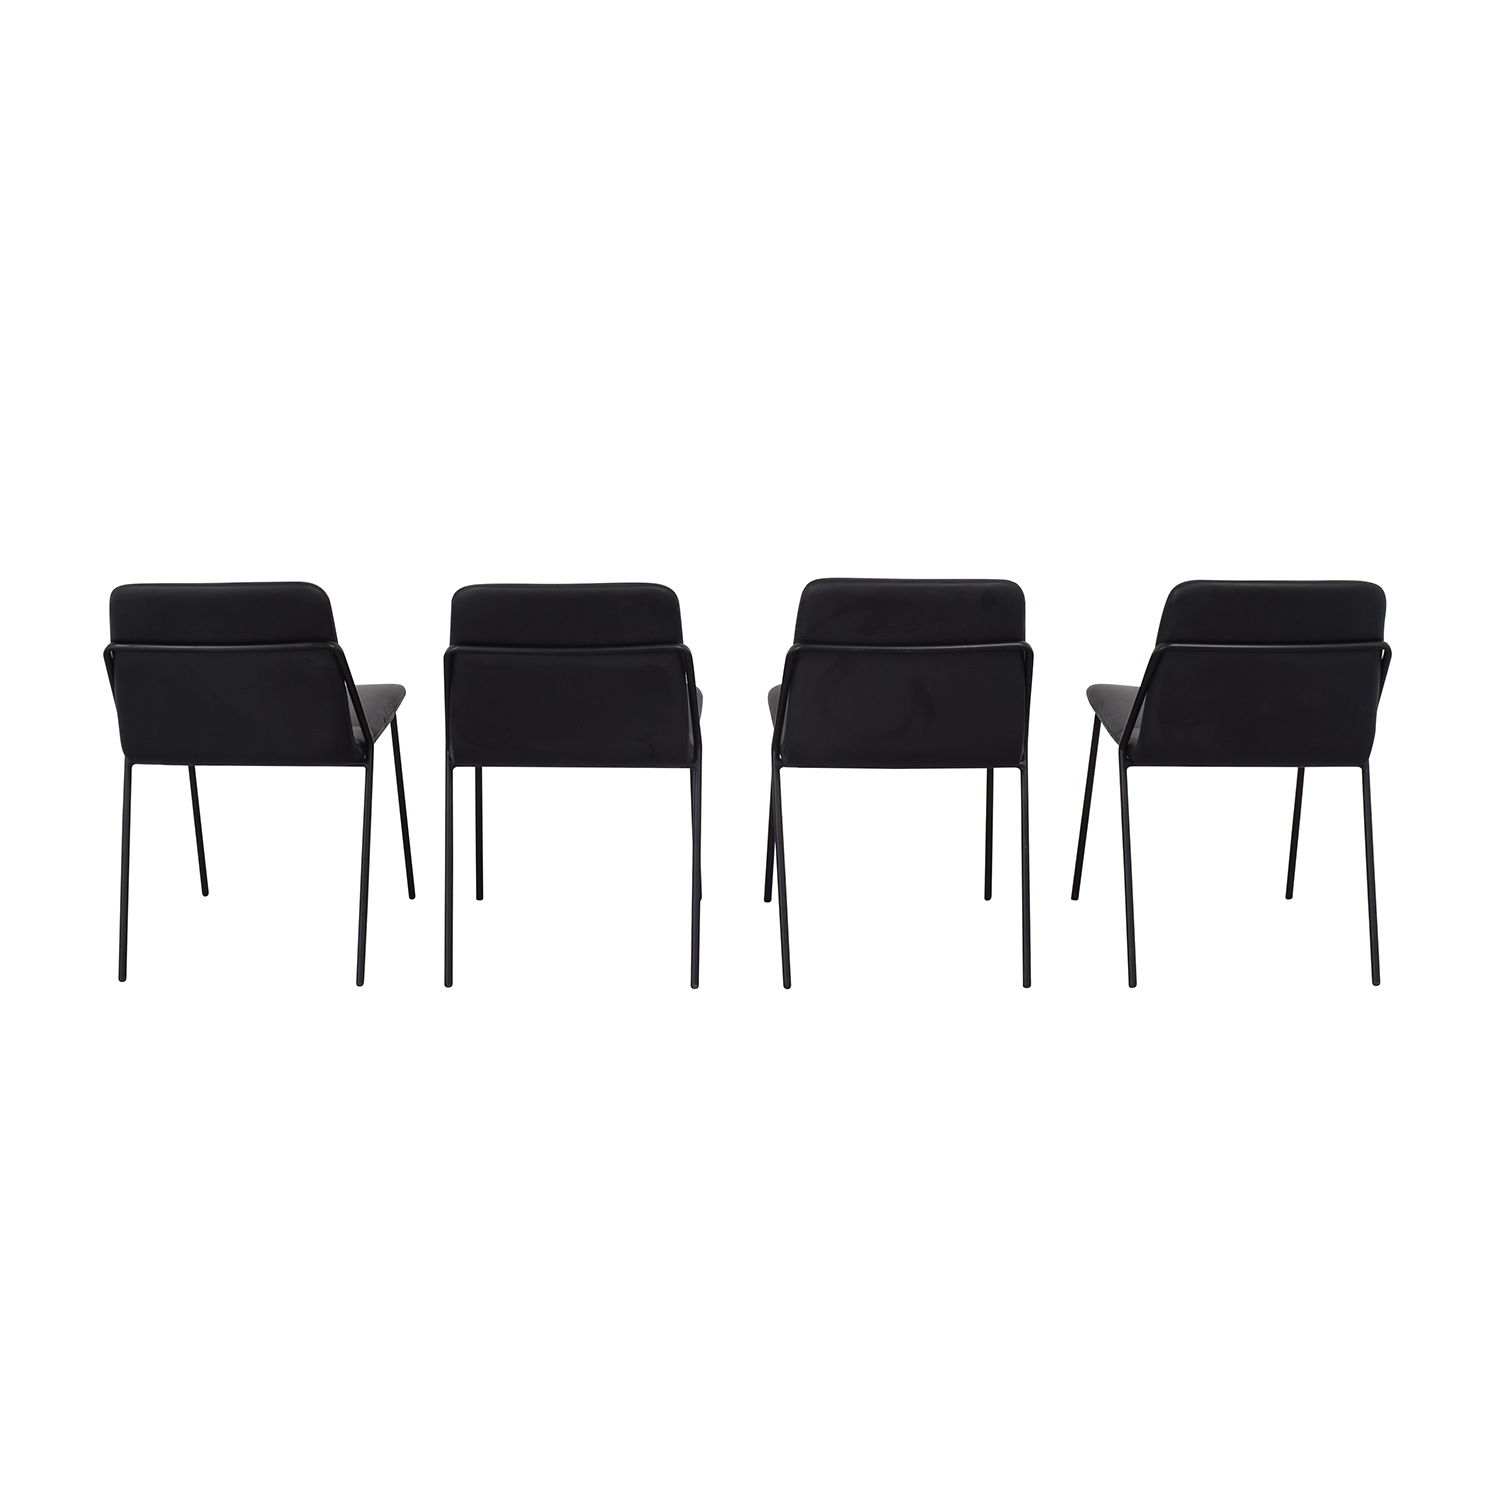 m.a.d. m.a.d. Black Sling Upholstered Chairs on sale